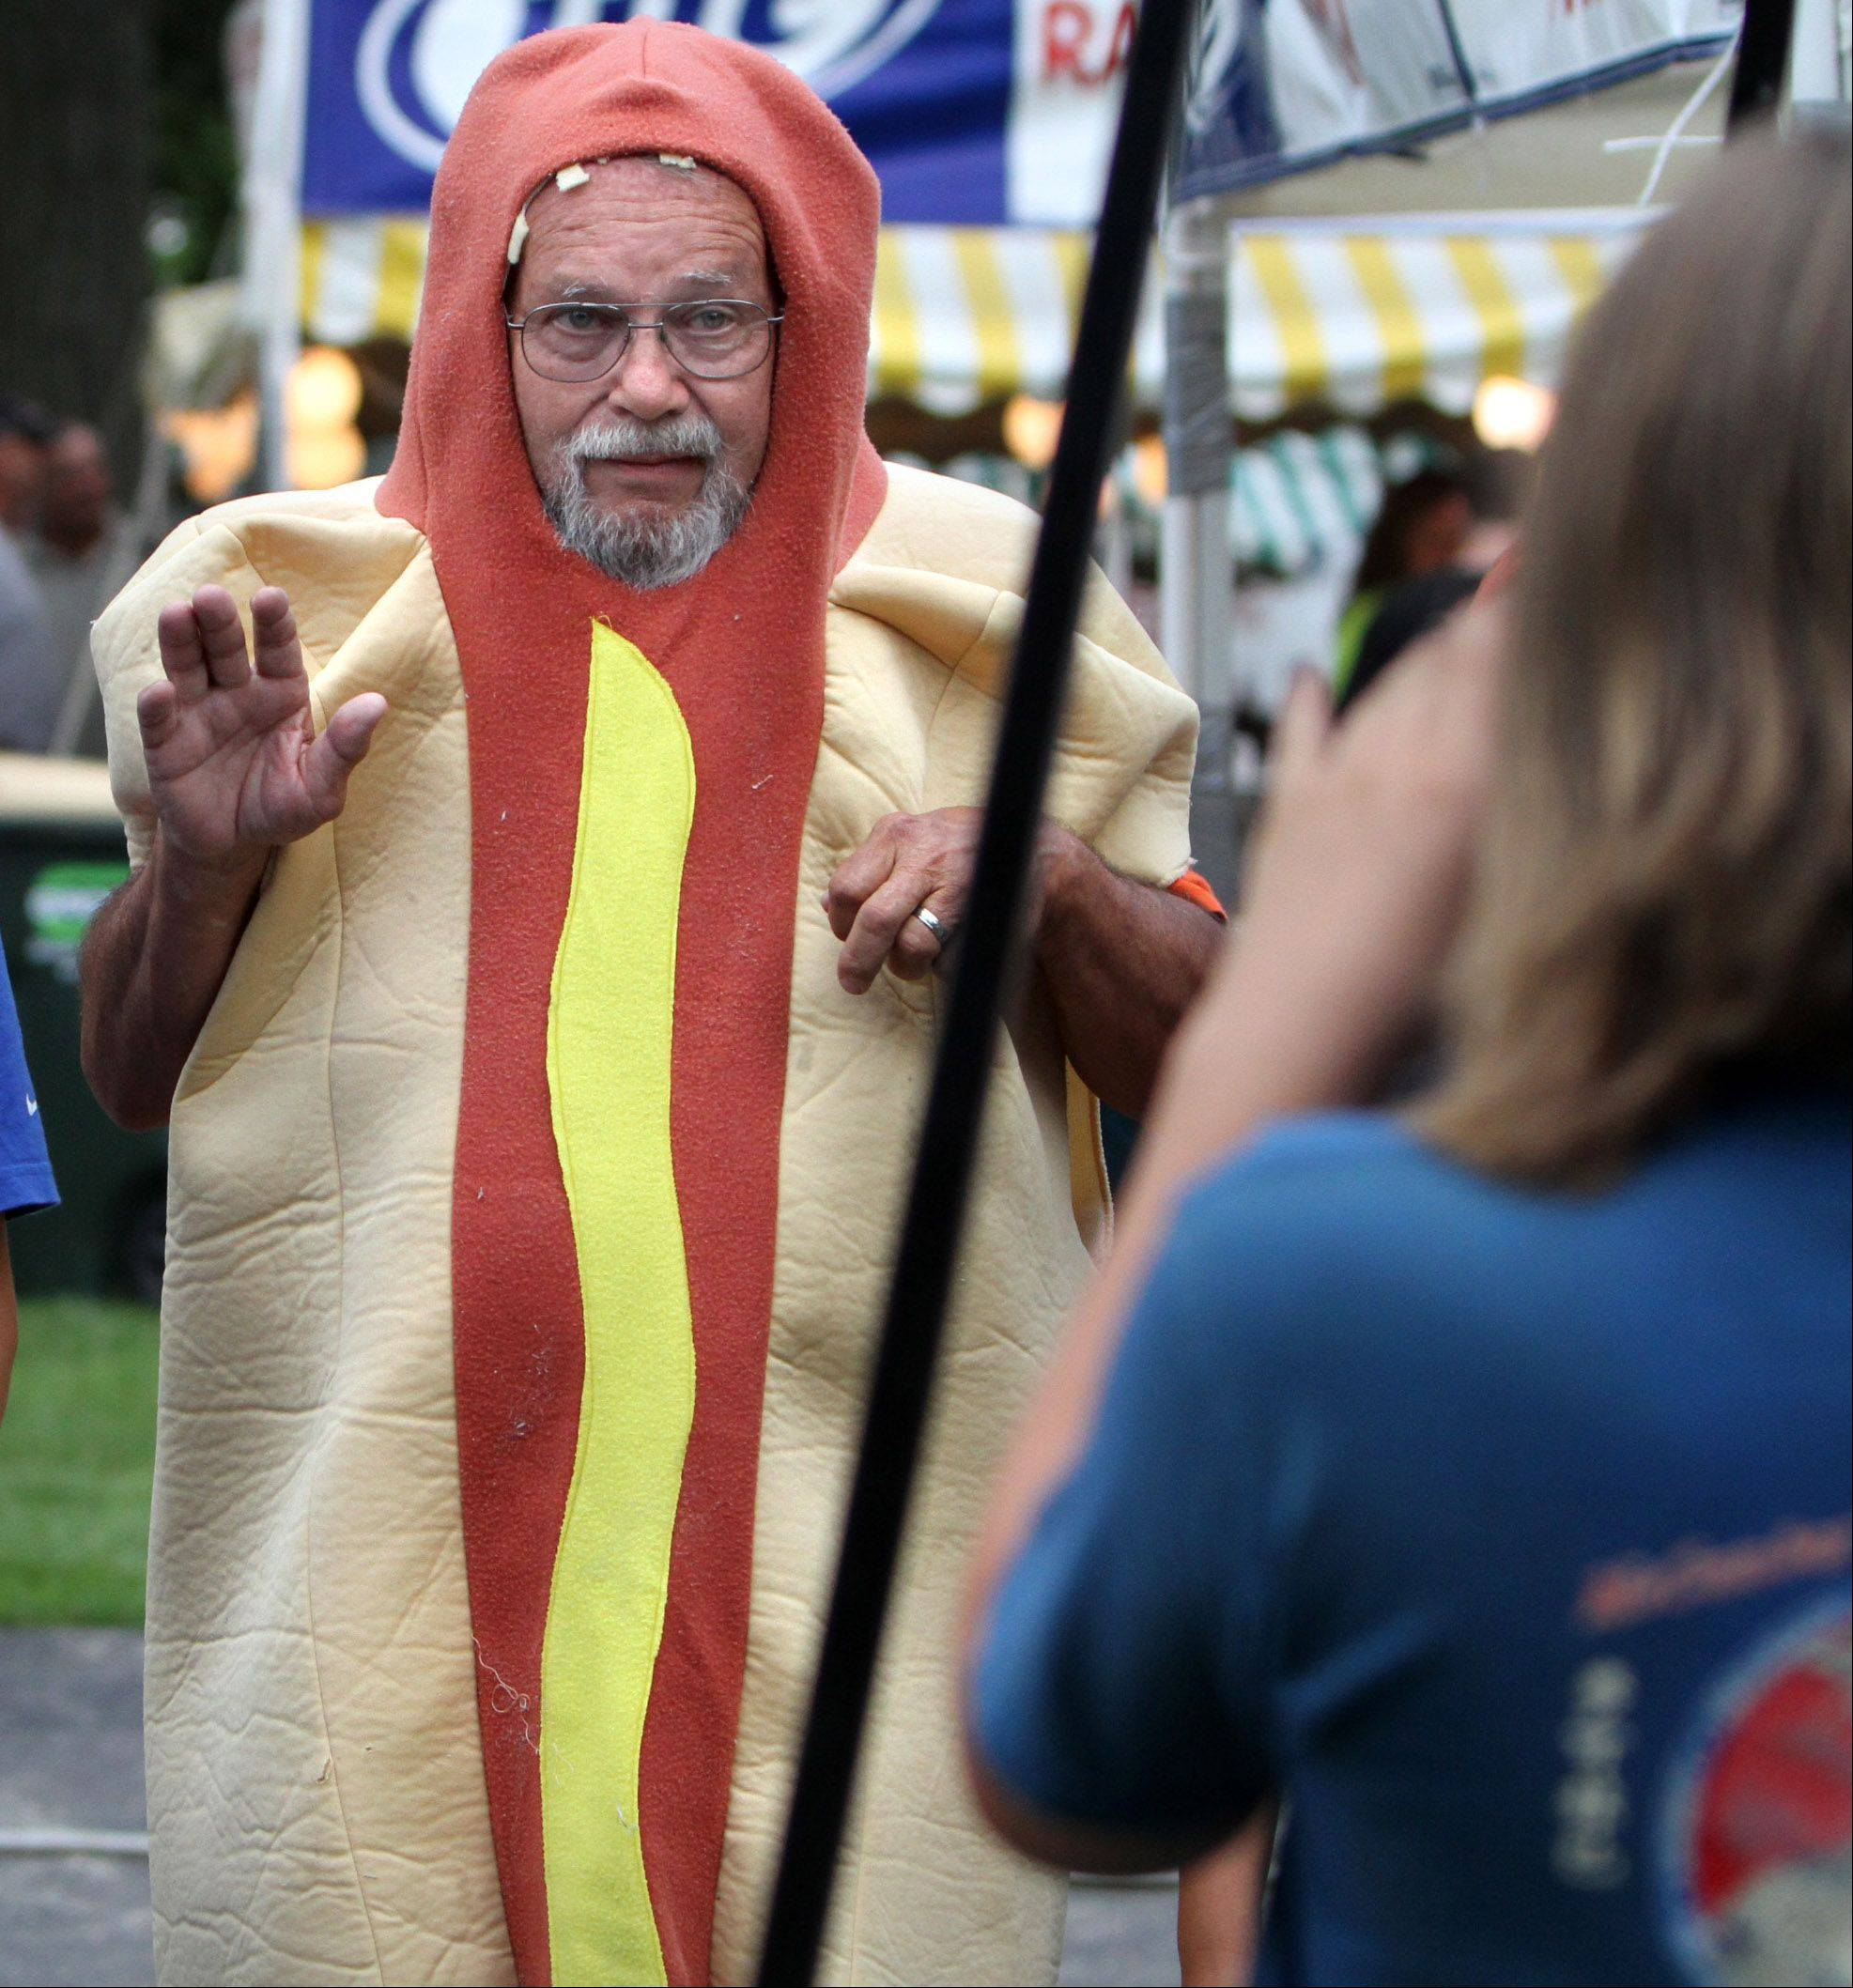 Tony Musur gets a photo taken as he tries to round up contestants last year for the first hot dog-eating contest at Lakemoor Fest. More contestants are expected this year for the contest scheduled for 7 p.m. Friday.